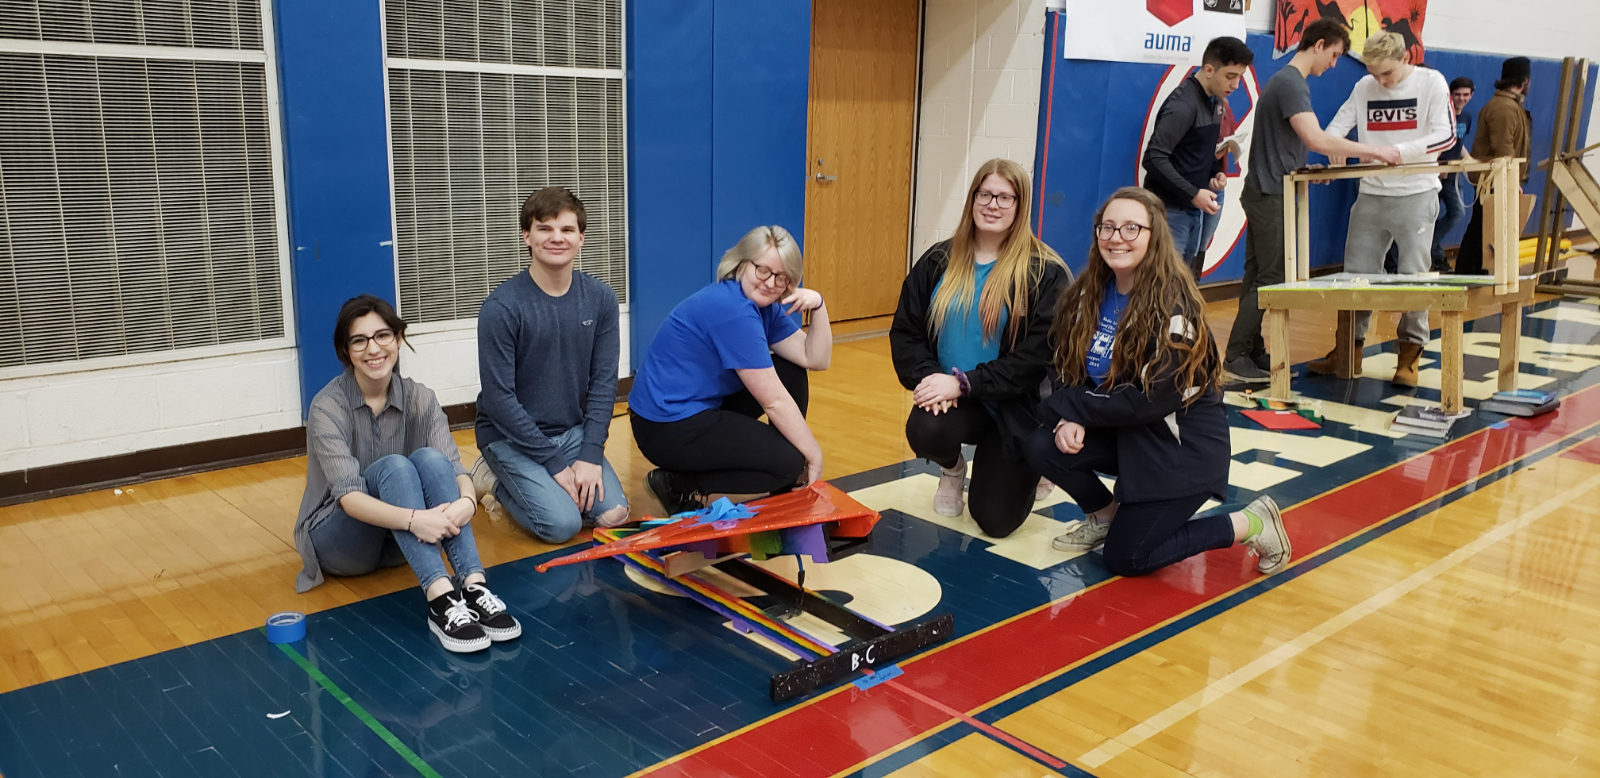 Team competes at Shaler STEAM competition